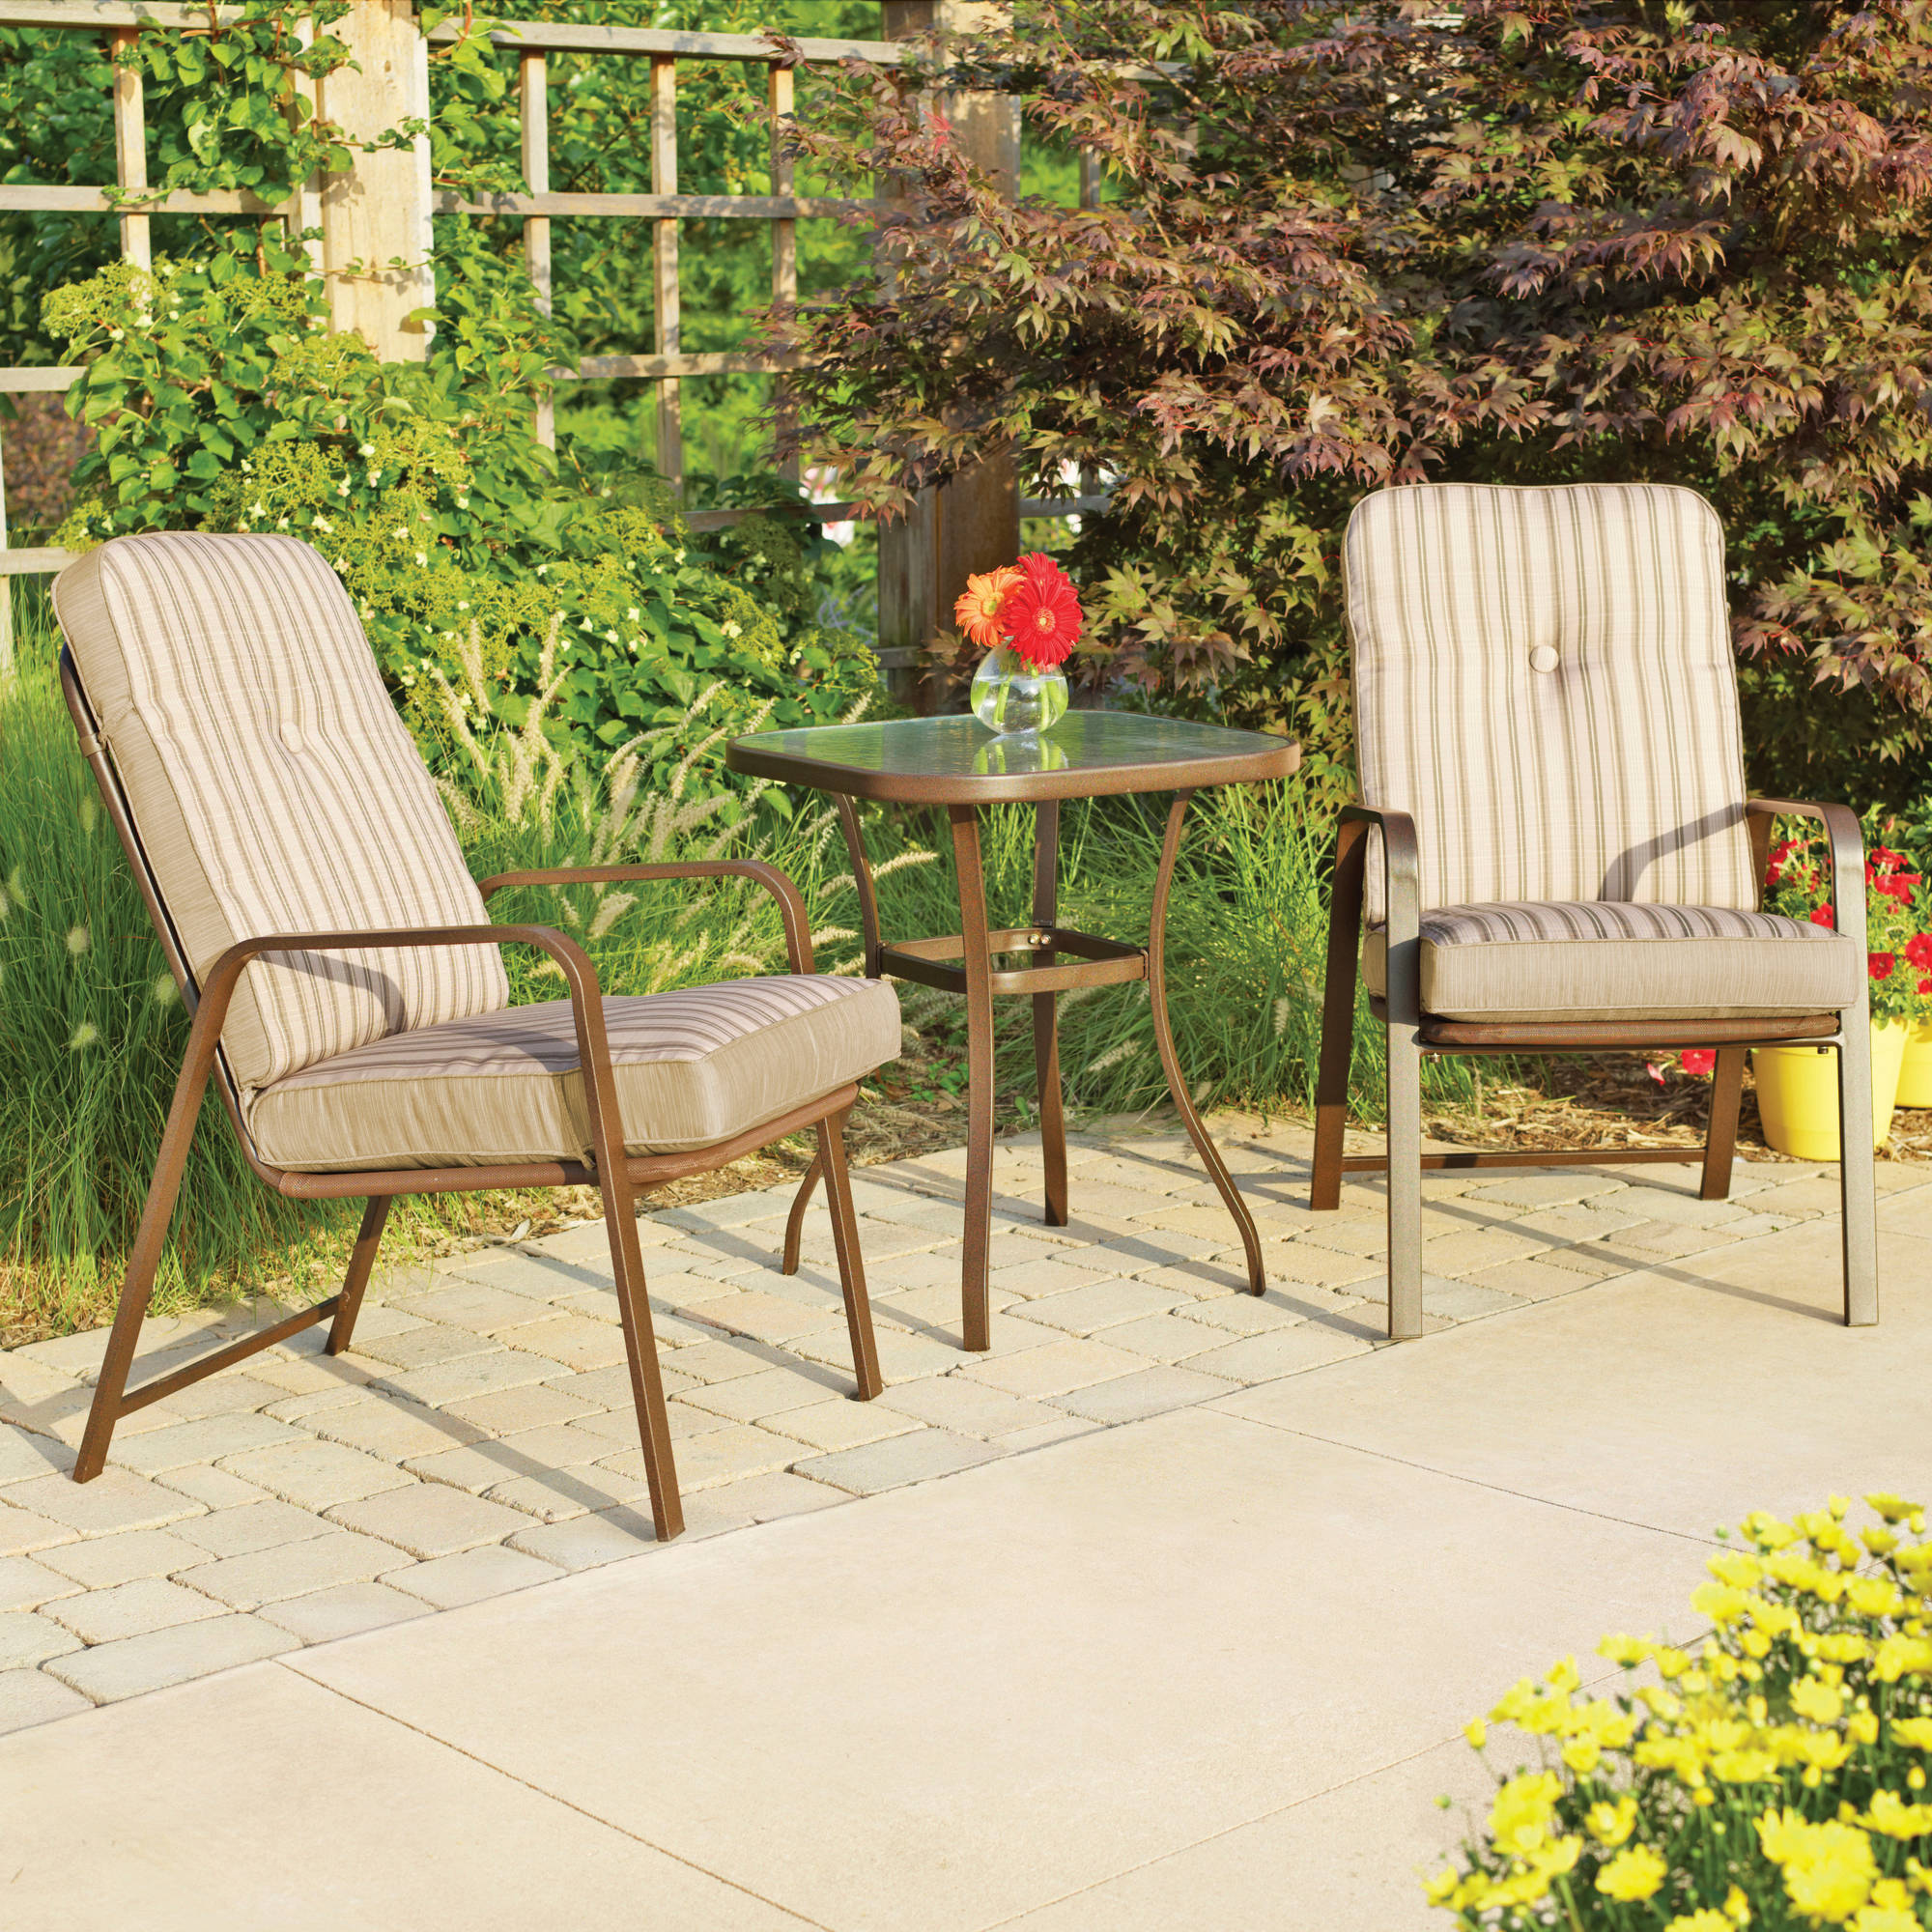 Mainstays Lawson Ridge 3 Piece Outdoor Bistro Set Seats 2